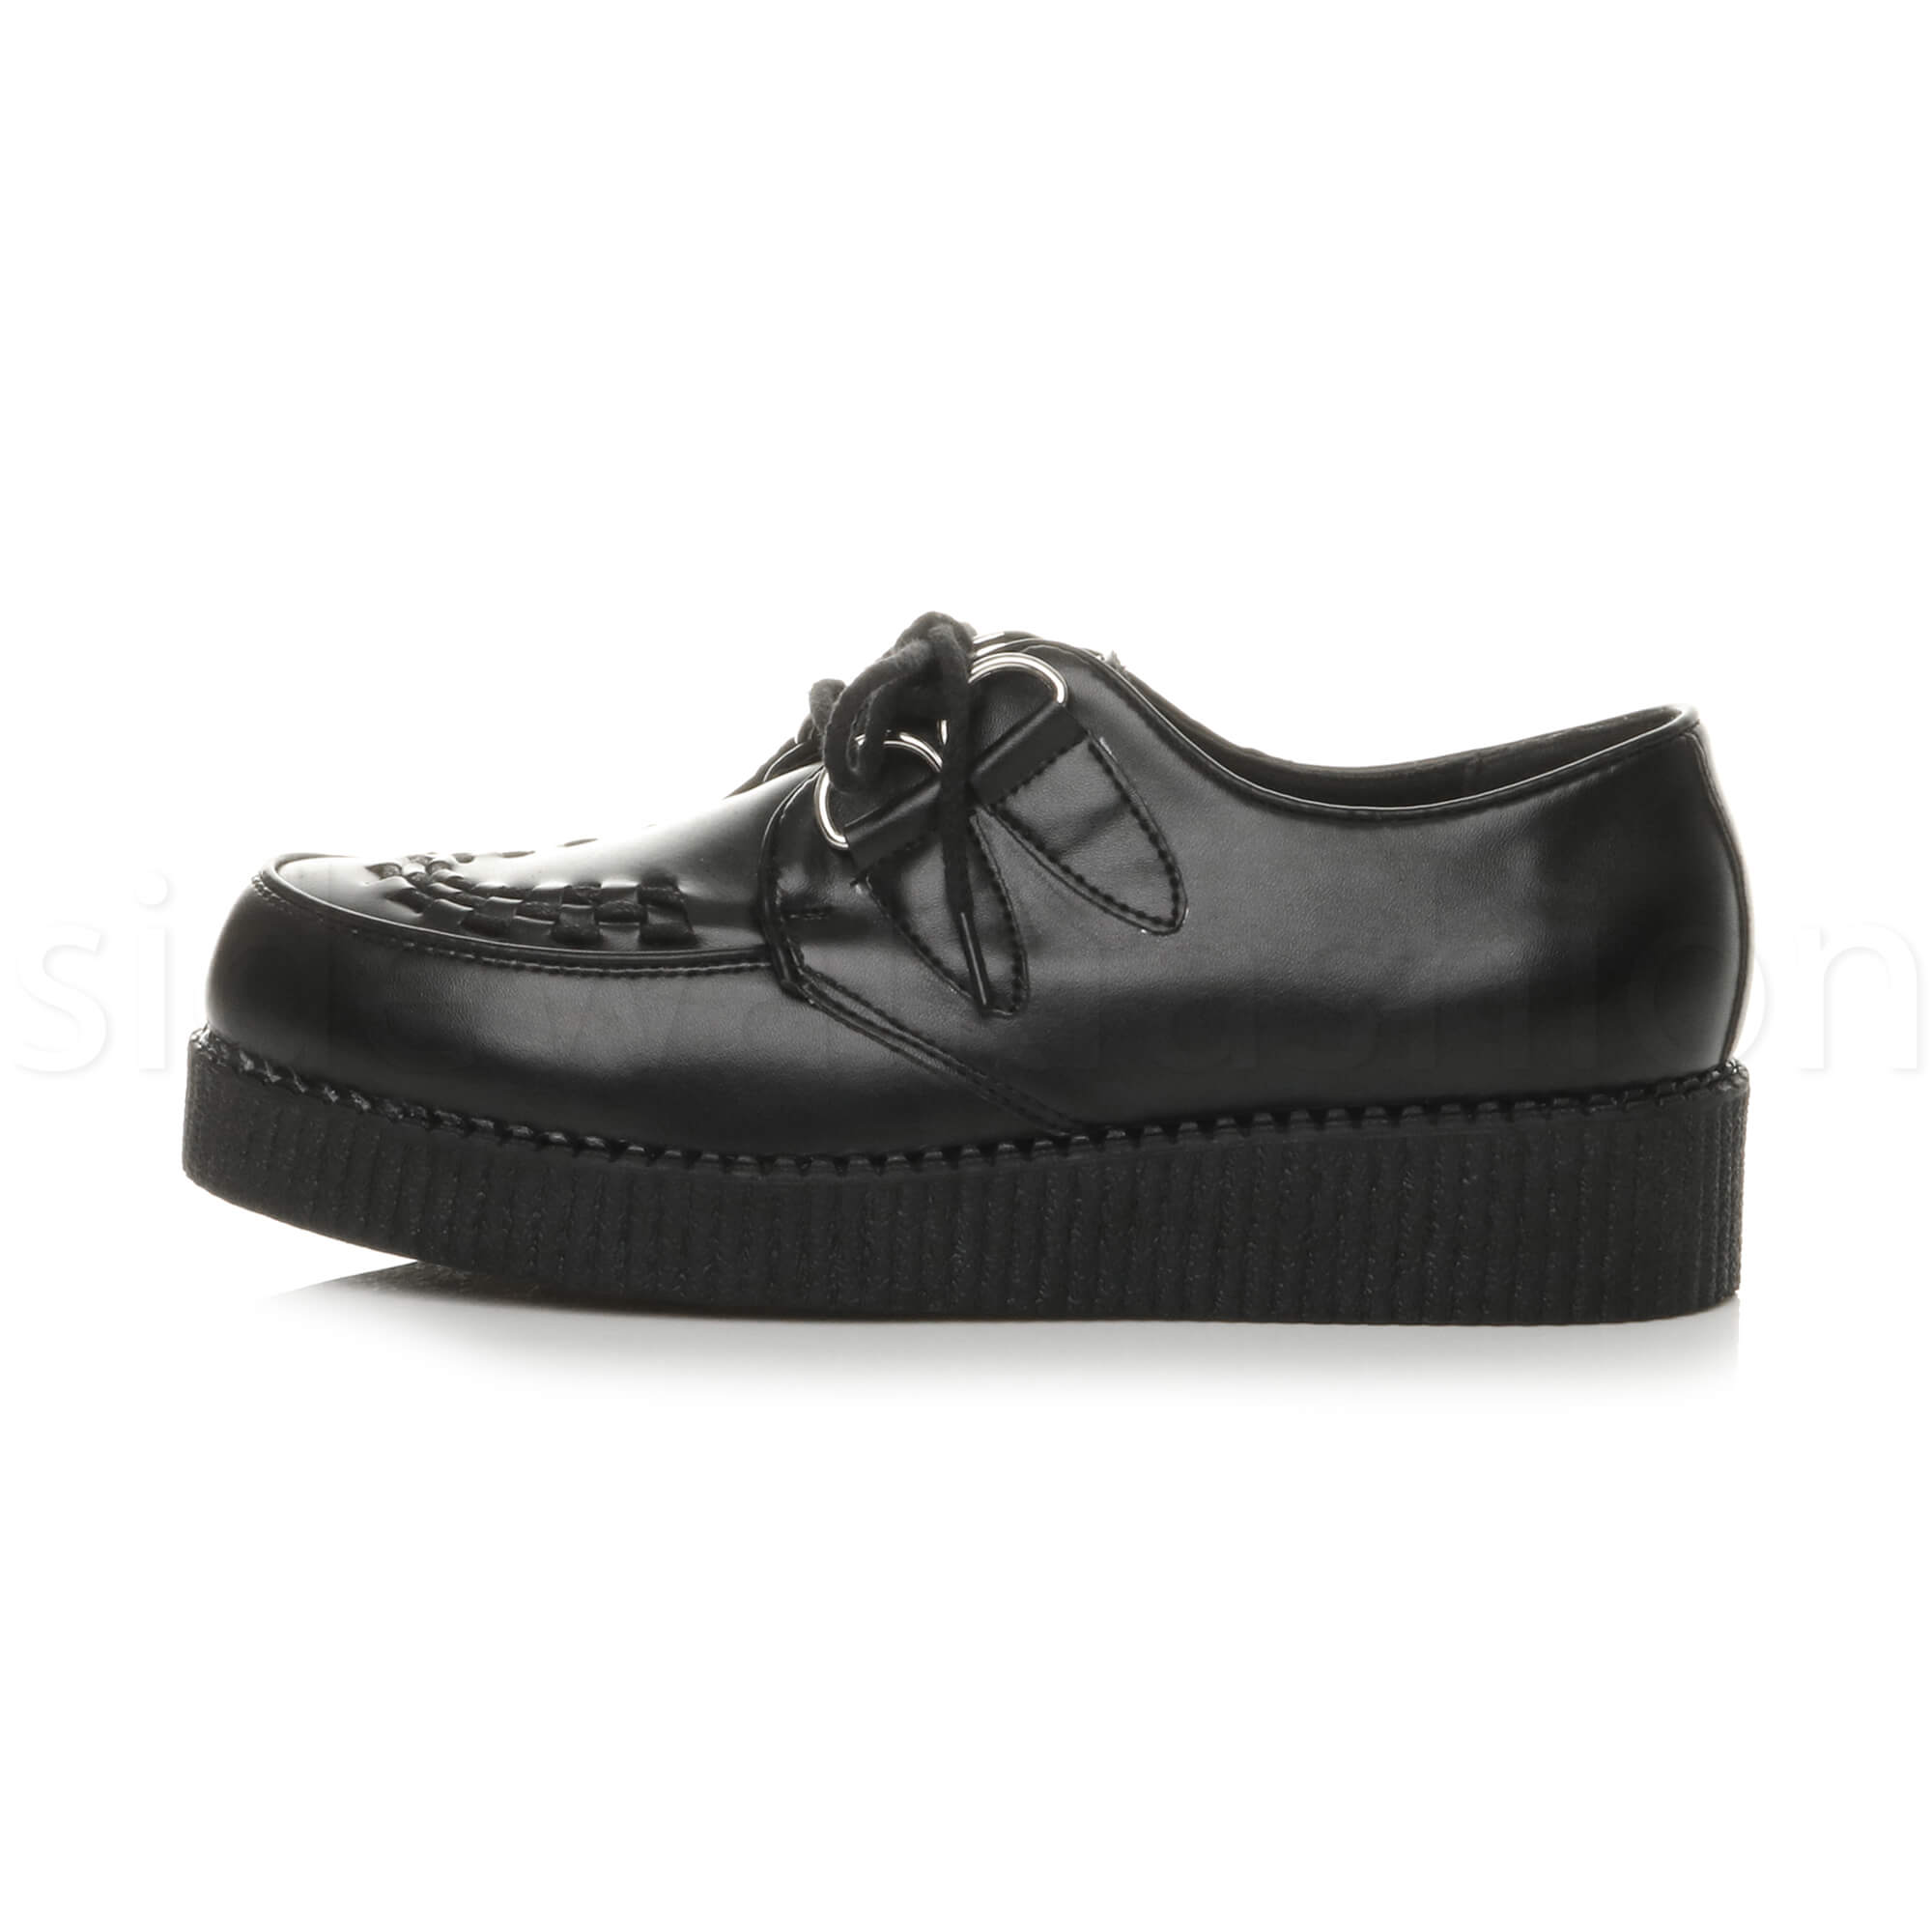 Details about Mens lace up grunge goth punk rockabilly brothel creepers teddy boy shoes size